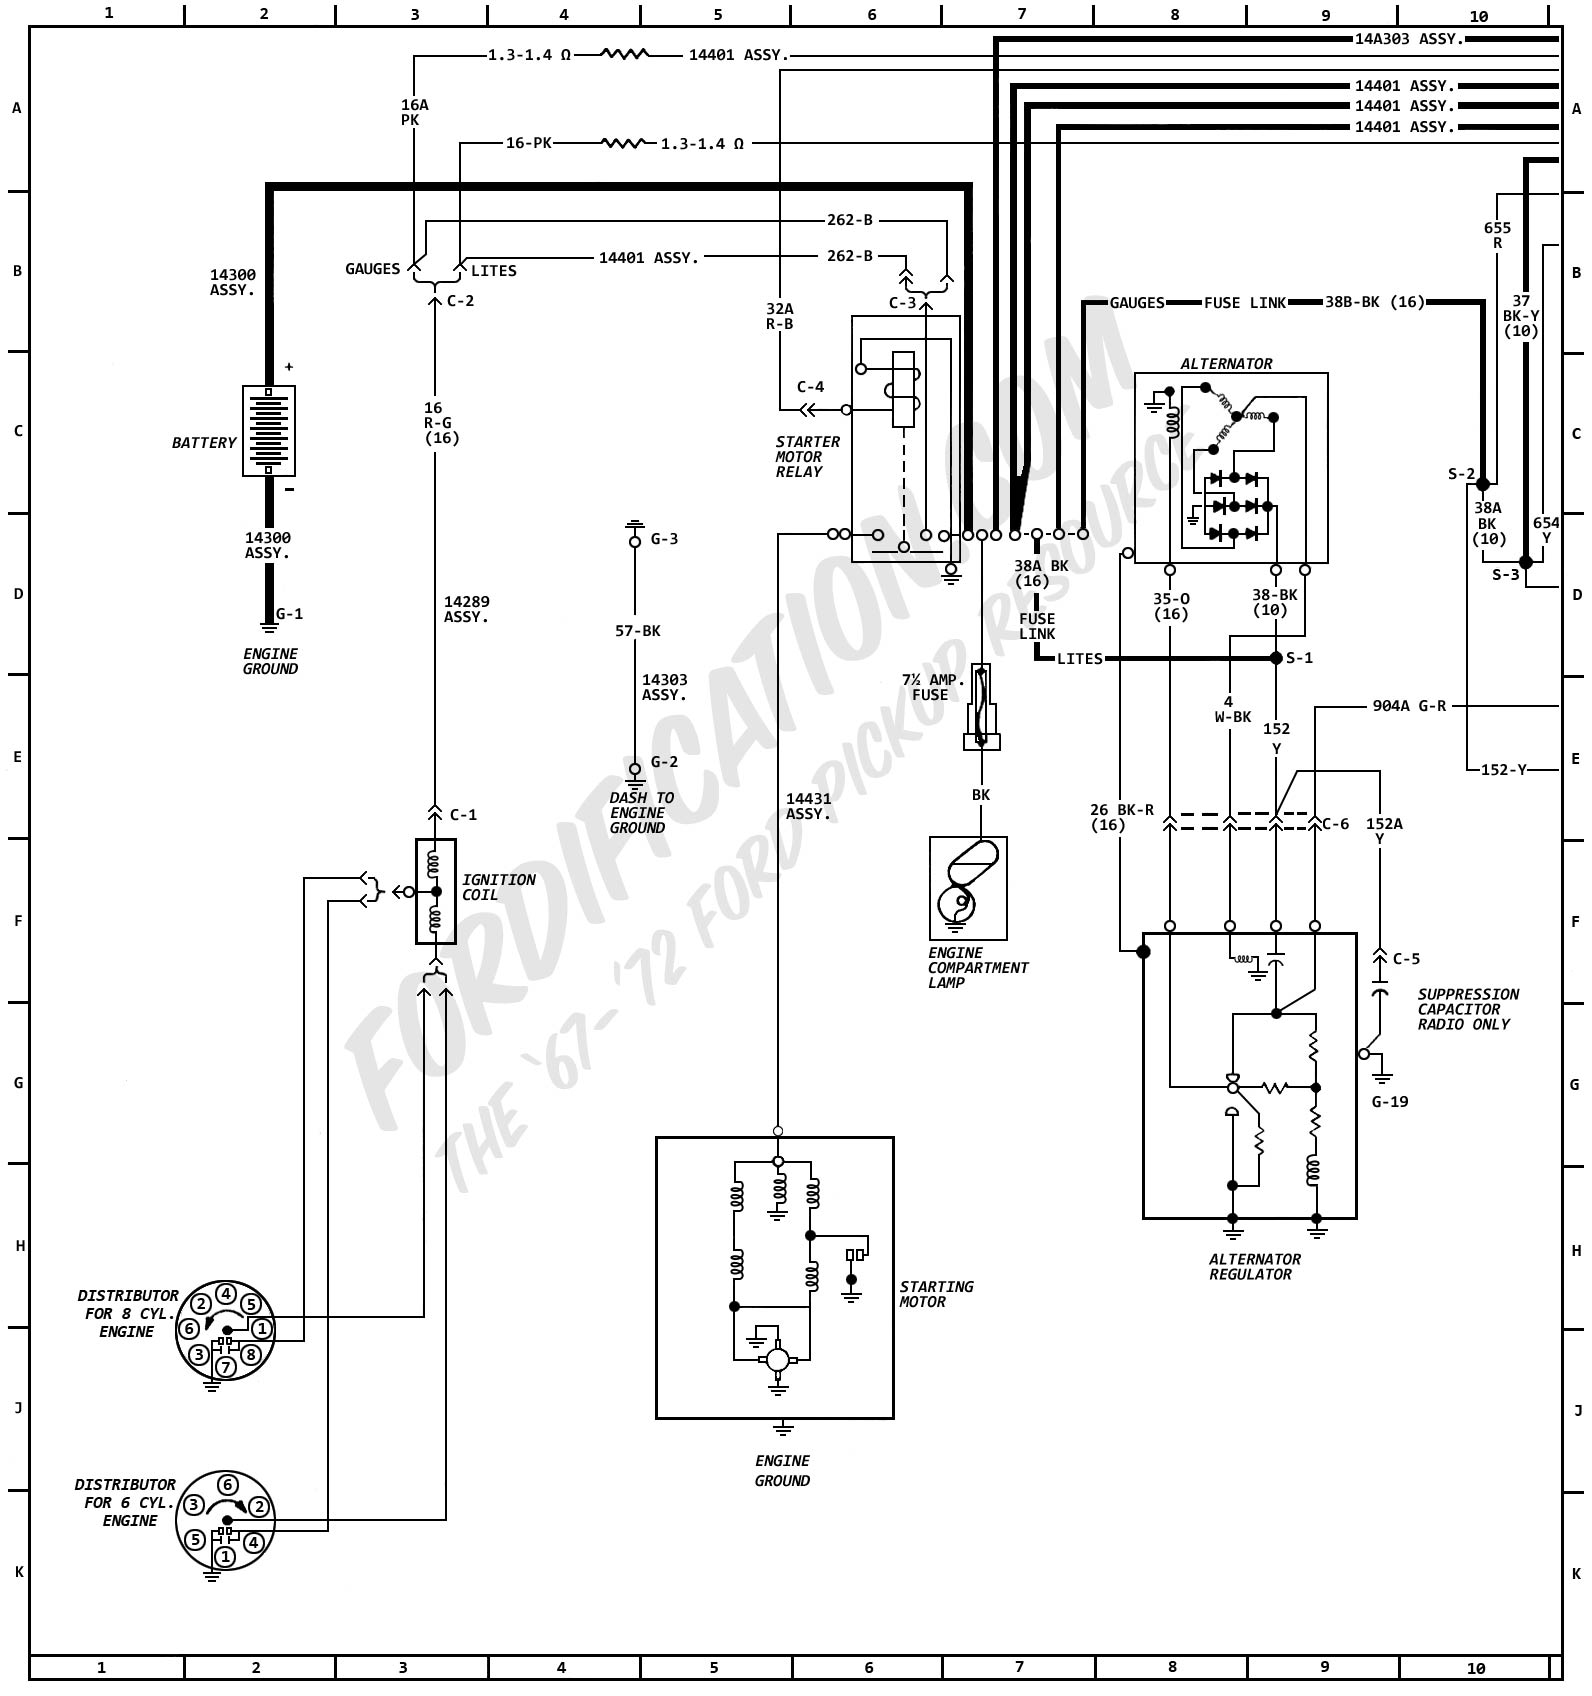 1972MasterWiring_01 1972 ford truck wiring diagrams fordification com ford truck wiring diagrams at nearapp.co